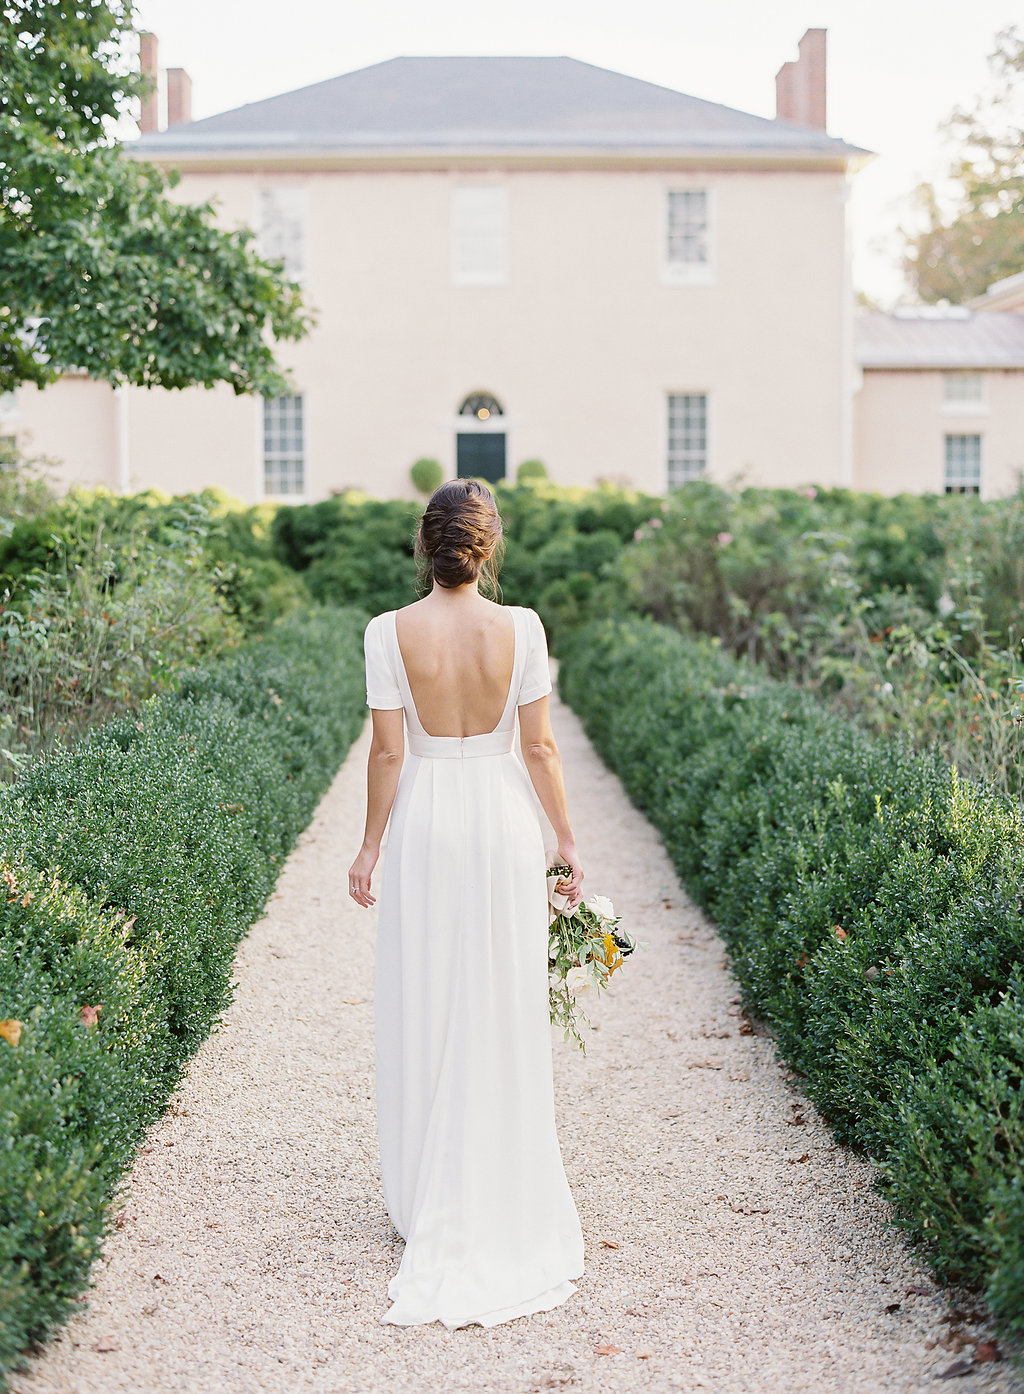 French Inspired Fall Wedding with Fine Art Destination Wedding Planner East Made Event Company and DC Film Photographer Vicki Grafton Photography at Tudor Place in Washington DC-101.jpg